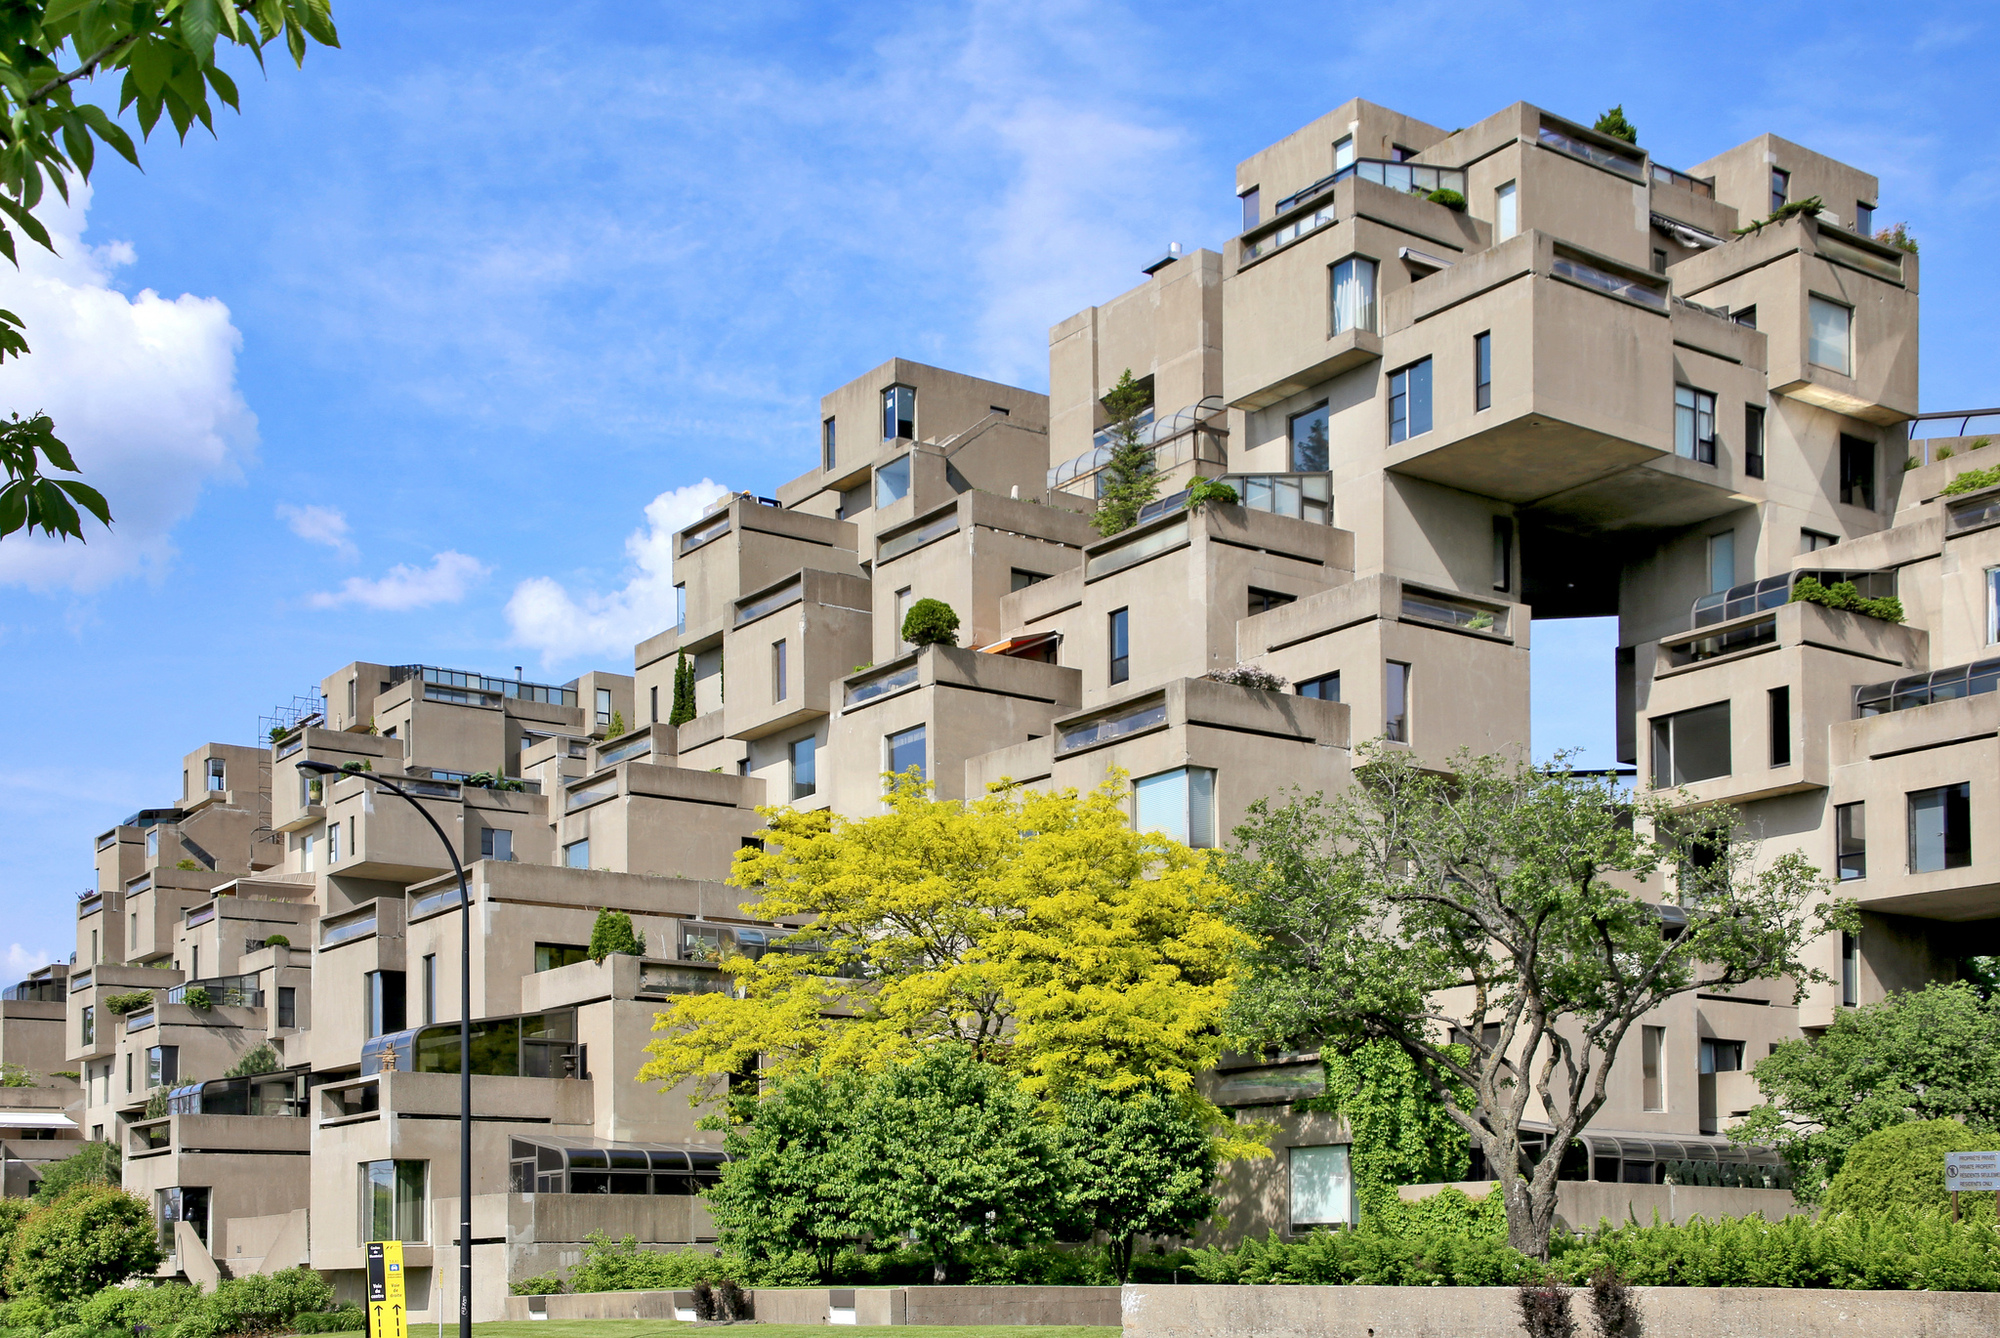 """A History of Concrete Molds, From Thomas Edison's Failed Cement Company to """"Habitat 67"""""""